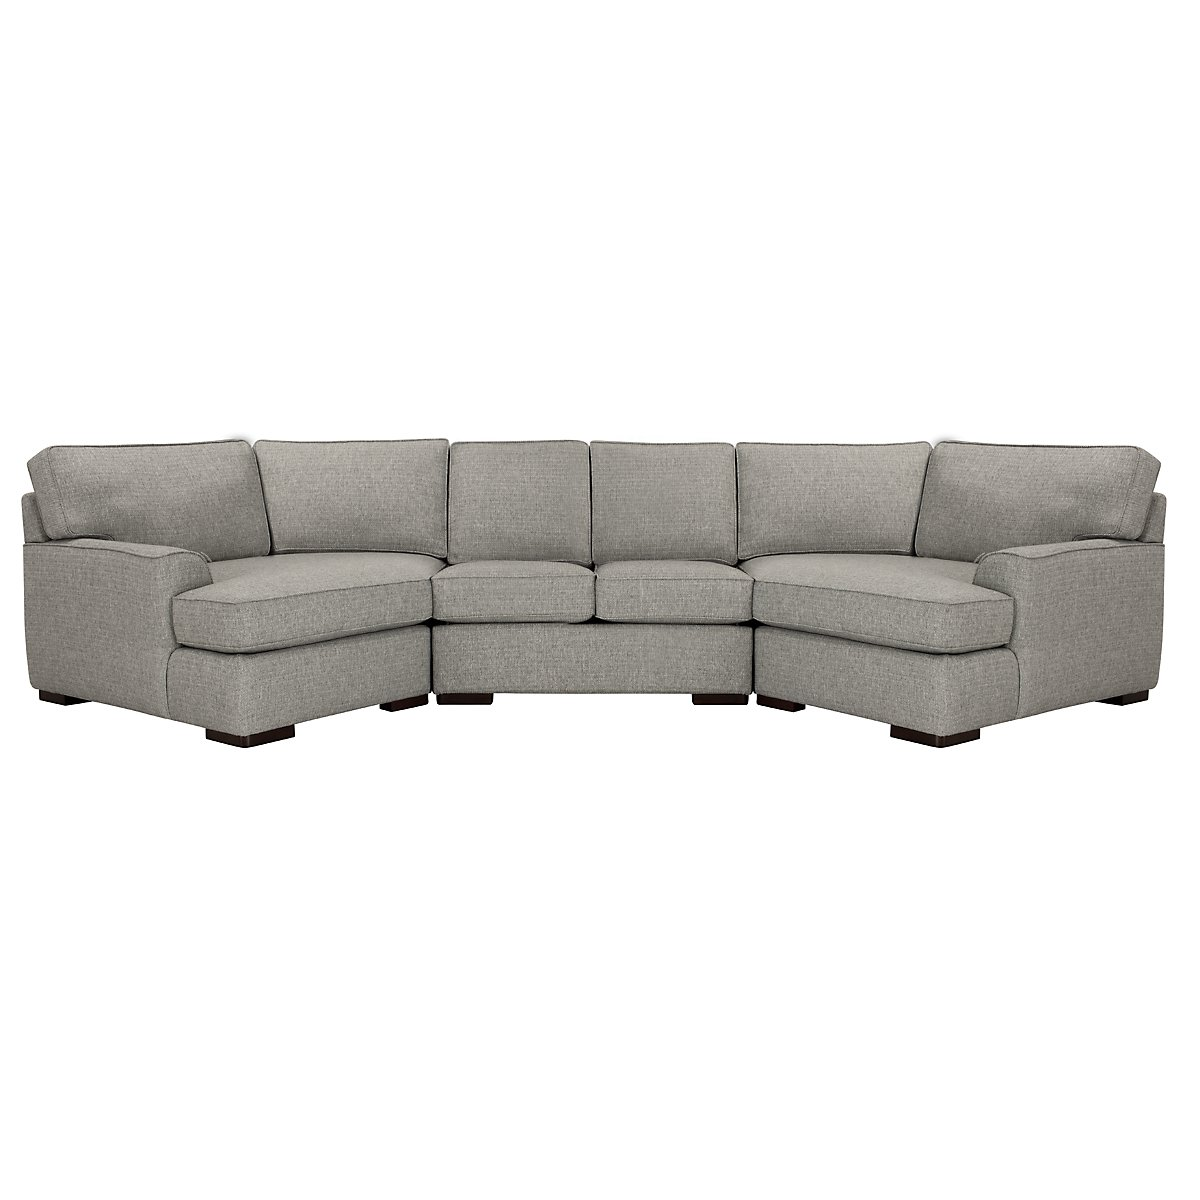 Free Furniture Austin: City Furniture: Austin Gray Fabric Dual Cuddler Sectional